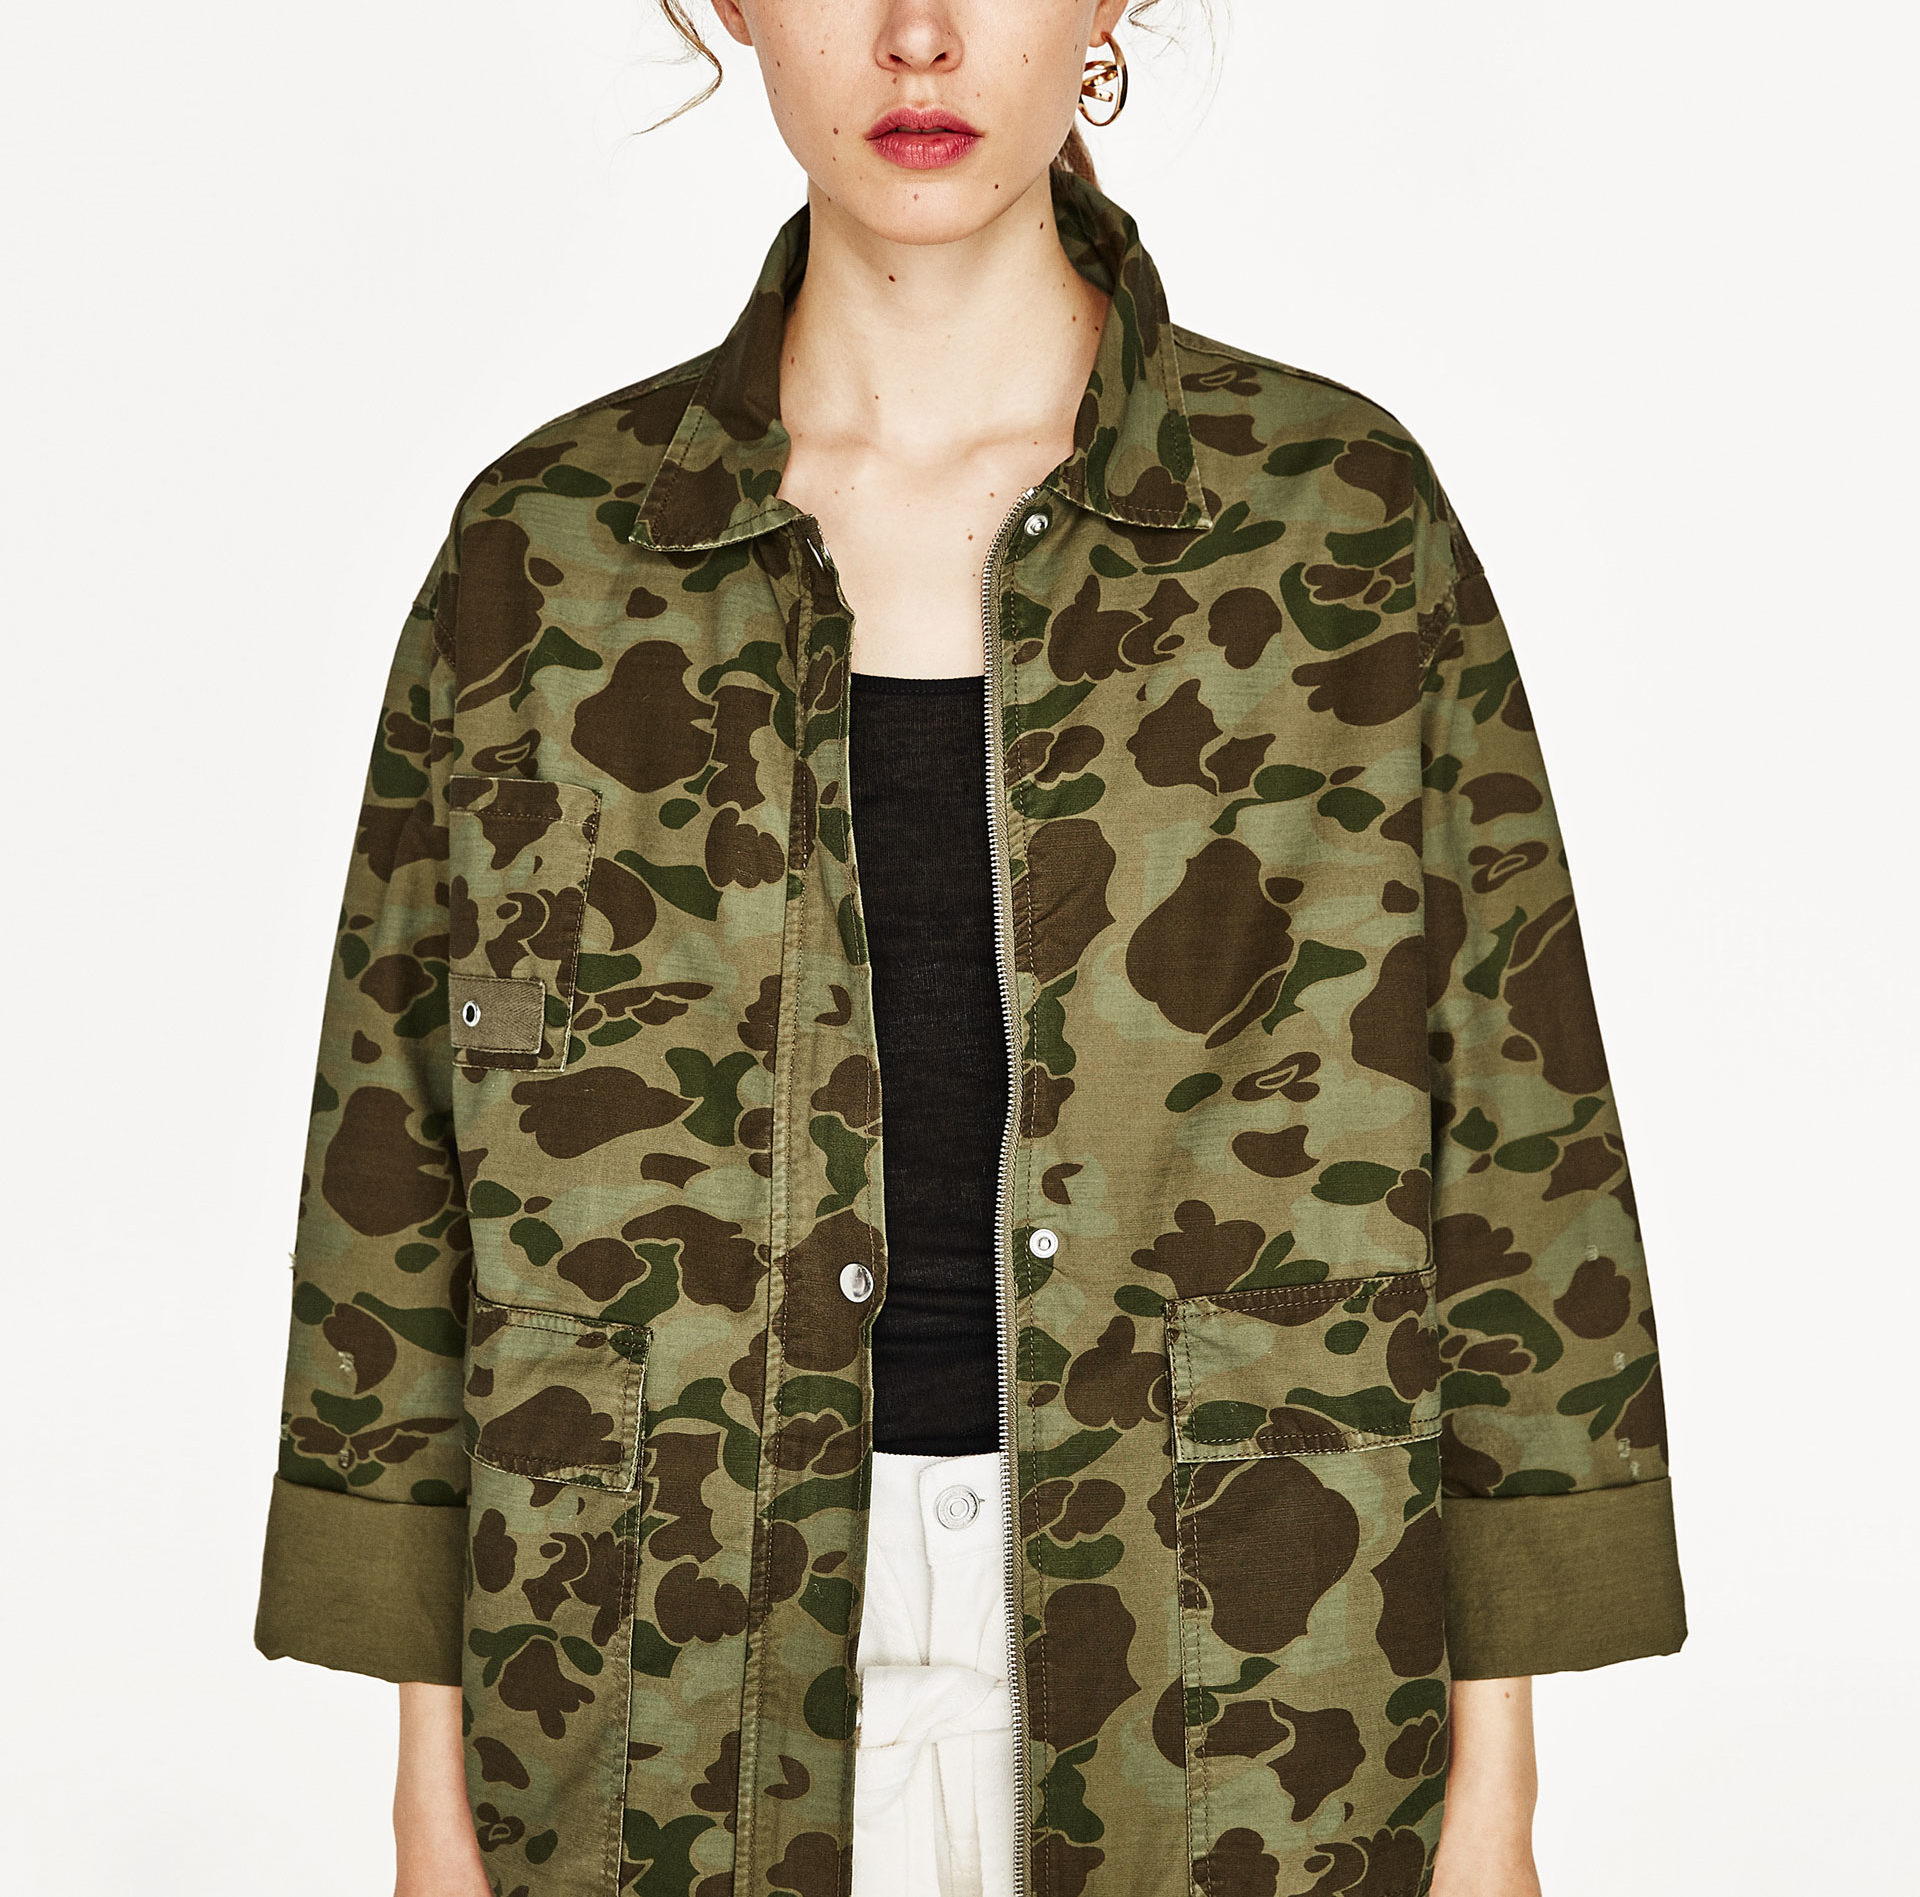 Zara camo jacket—All of a sudden, camo